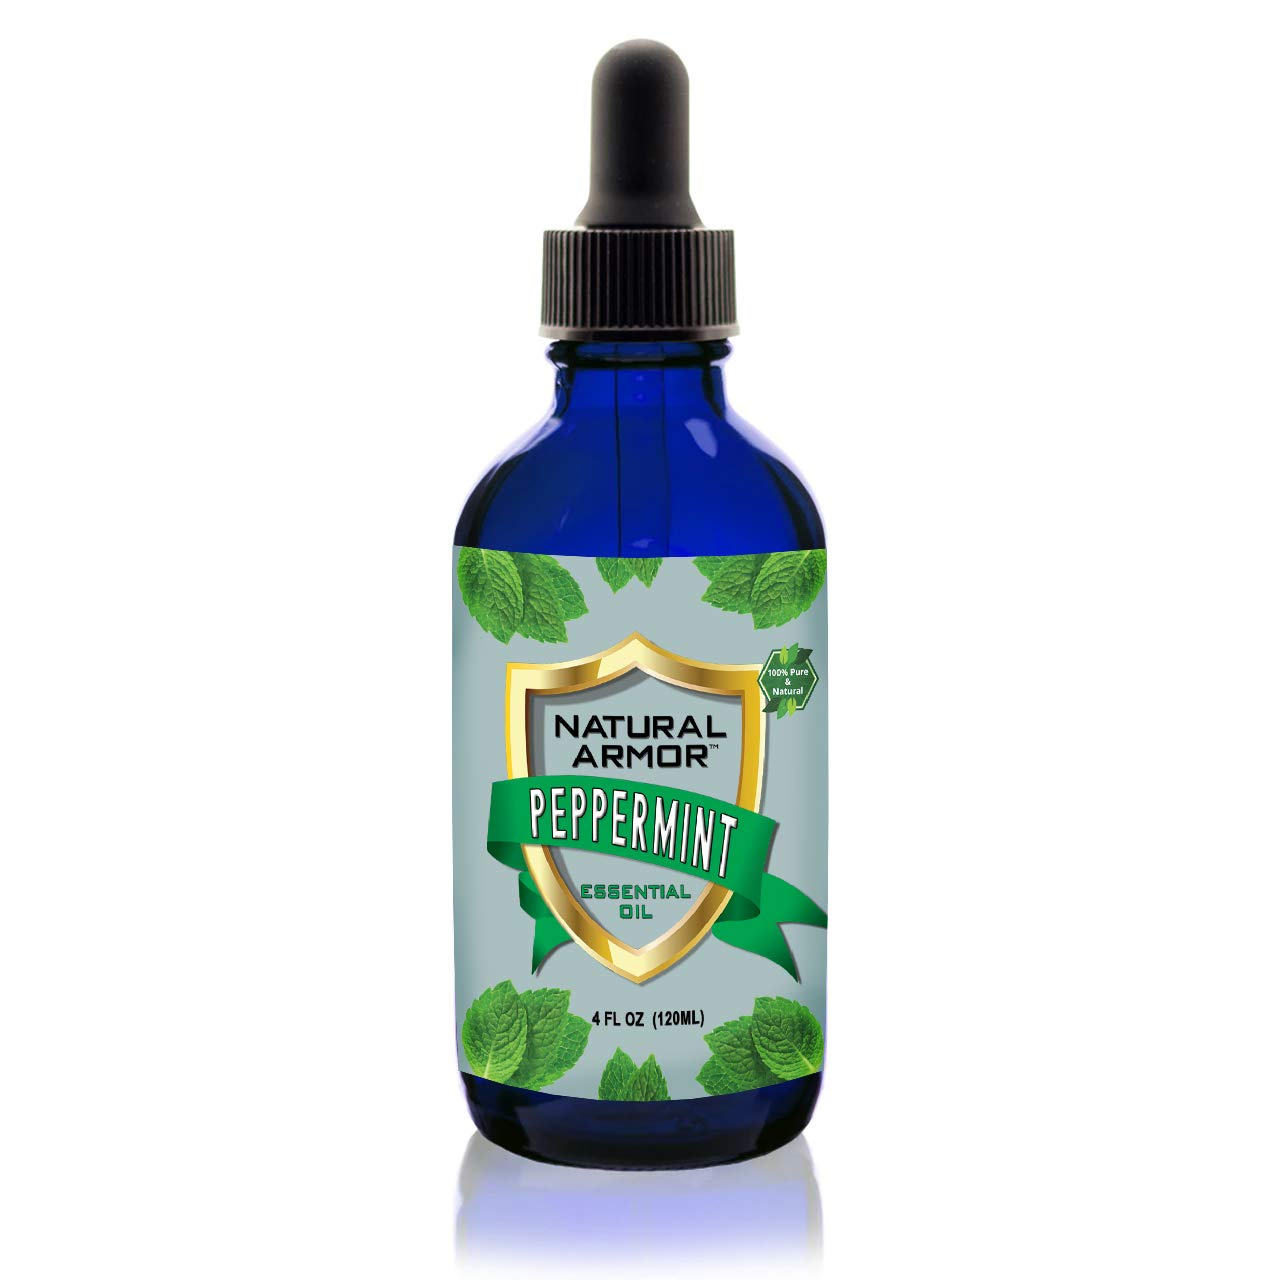 Peppermint Essential Oil - 100% Pure (Undiluted) Natural Premium Organic Extract With Dropper Included. Therapeutic Grade, NON-GMO. Huge 4 FL. OZ. Bottle